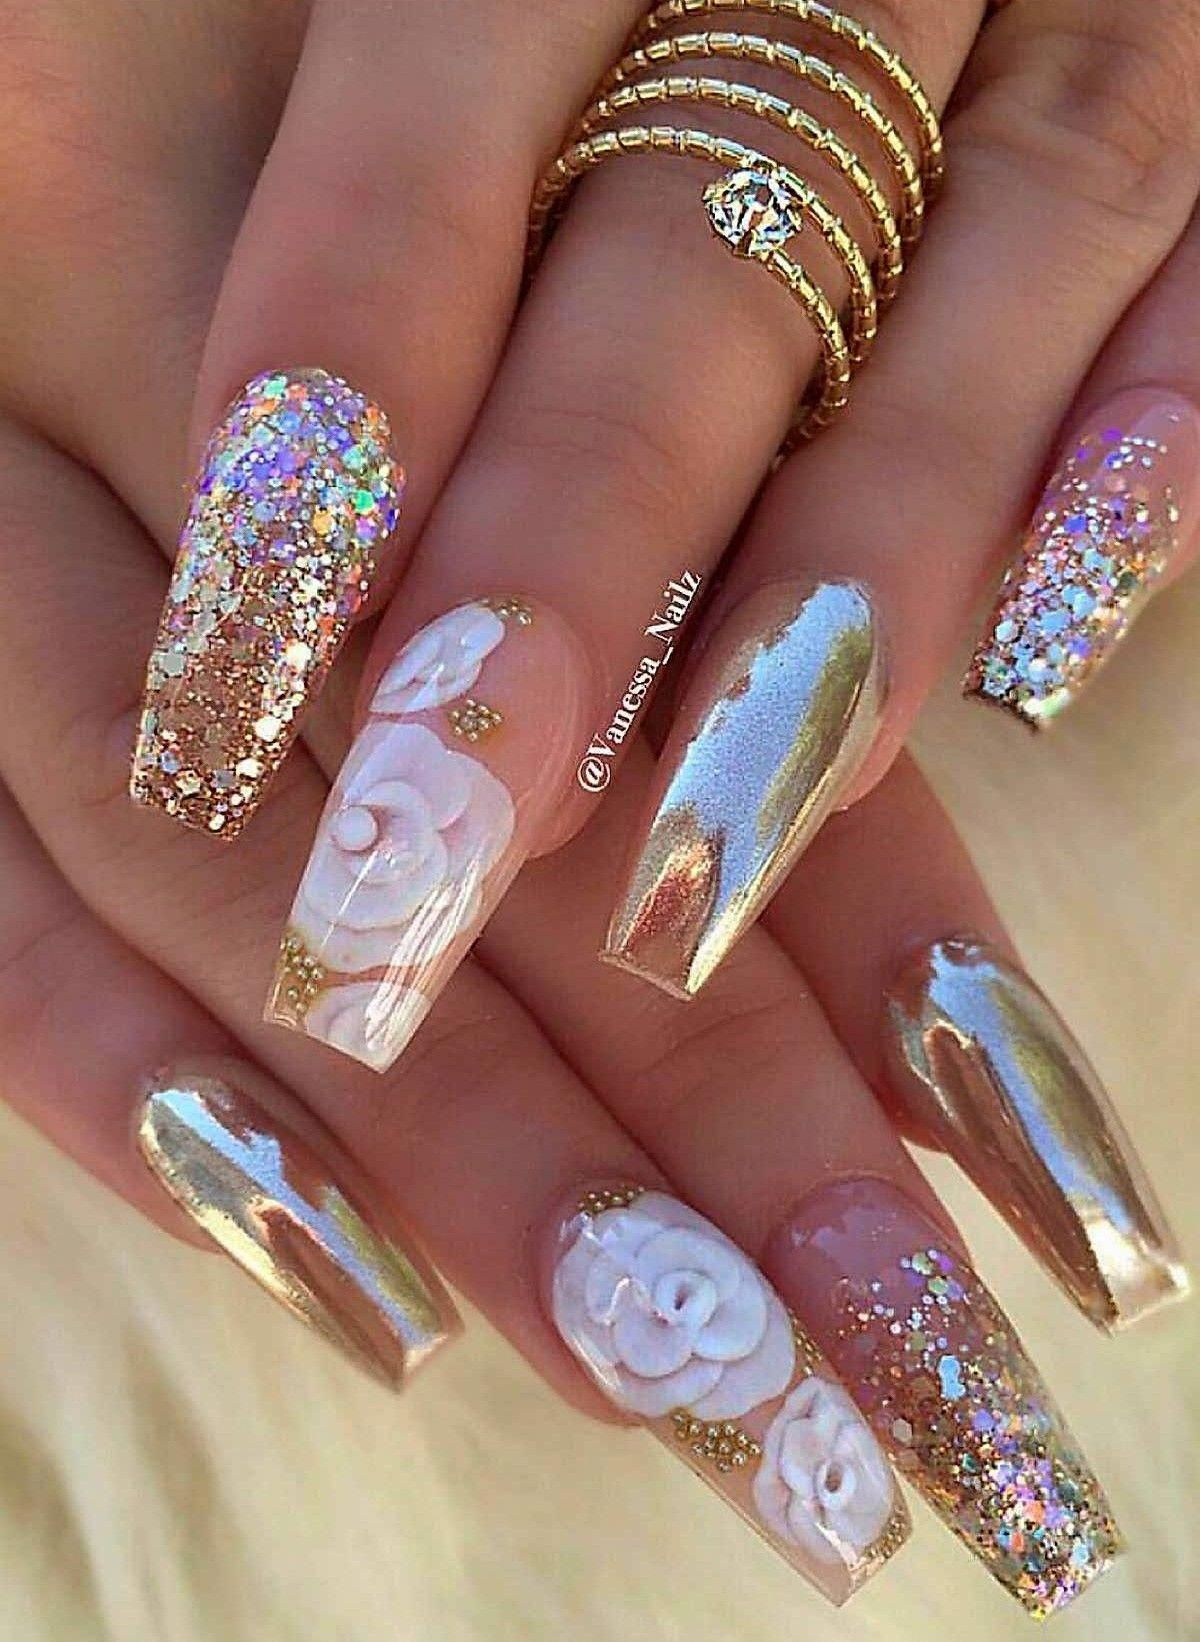 Stylish Gorgeous Glam Natural Nail Art Design Polish Manicure Gel Painting Creative Color Paint Toenails S Glam Nails Nail Designs Stylish Nails